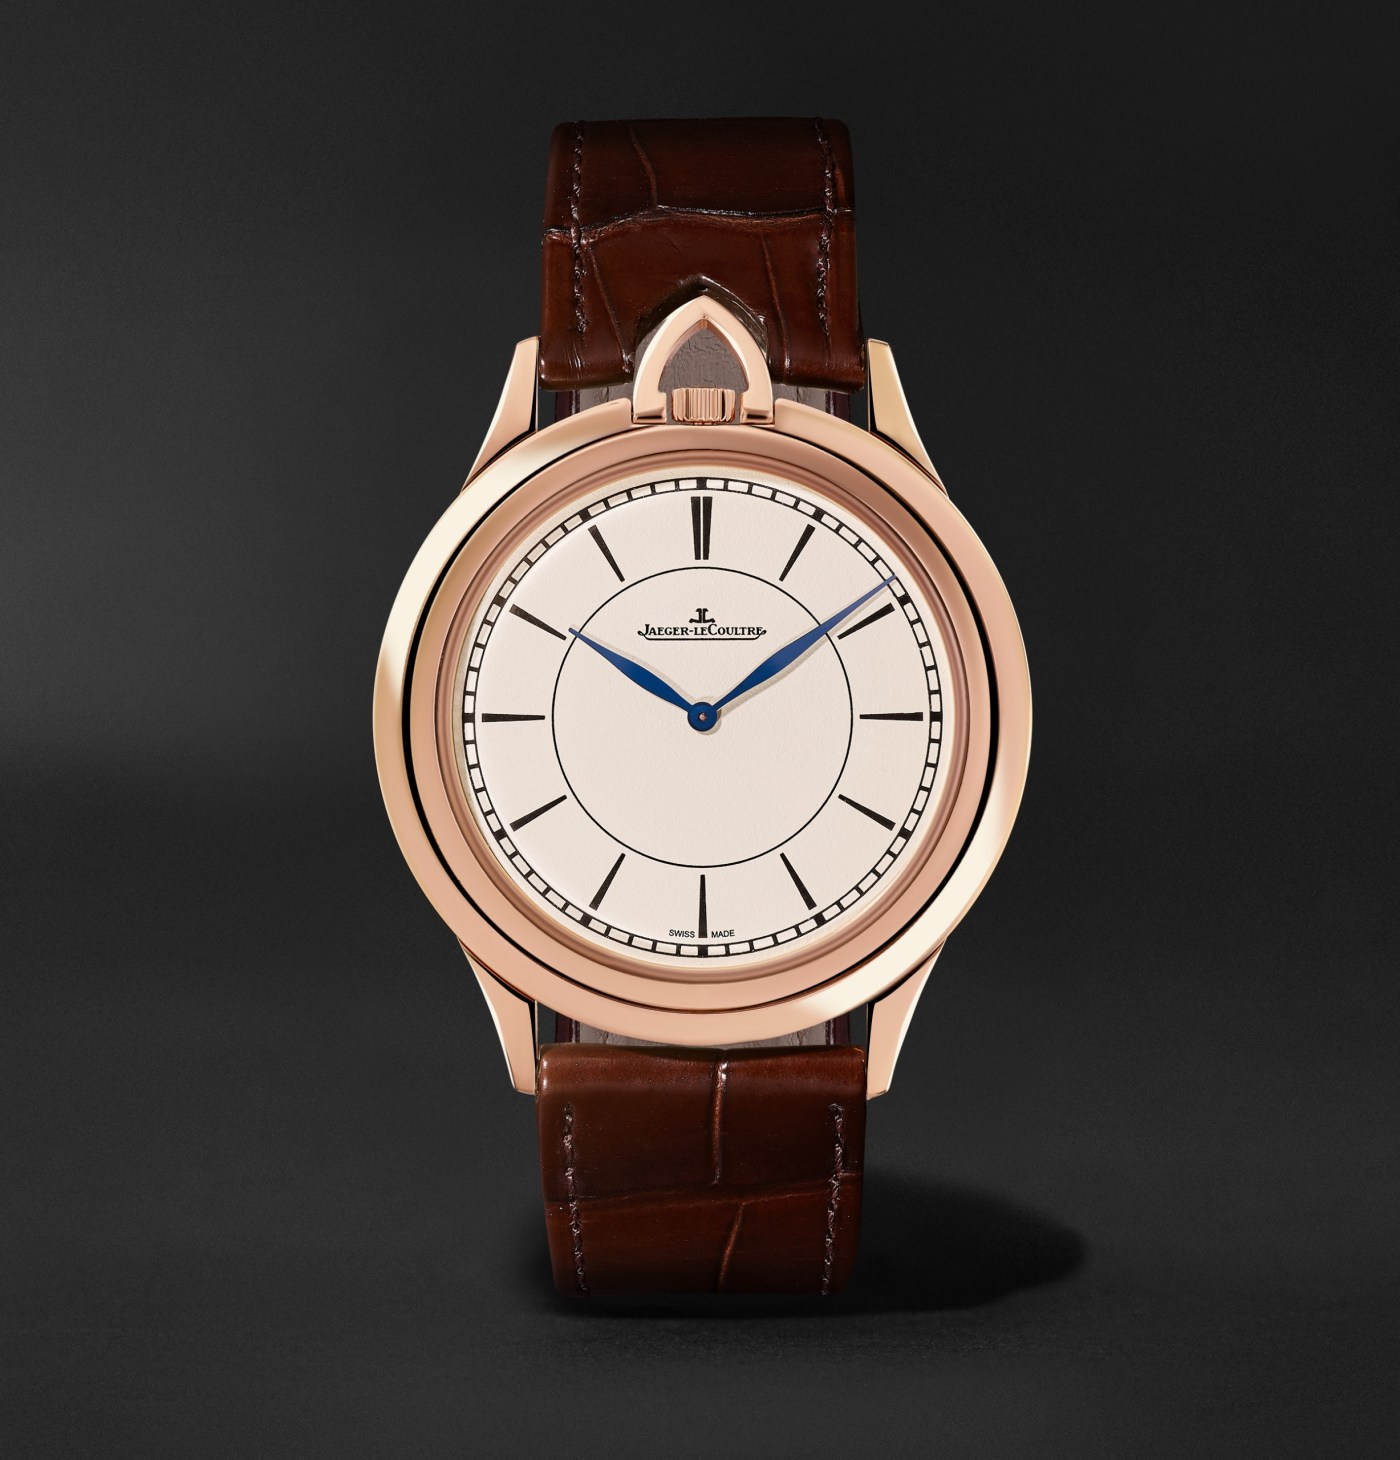 Jaeger-LeCoultre Master Ultra Thin Kingsman Knife Watch front